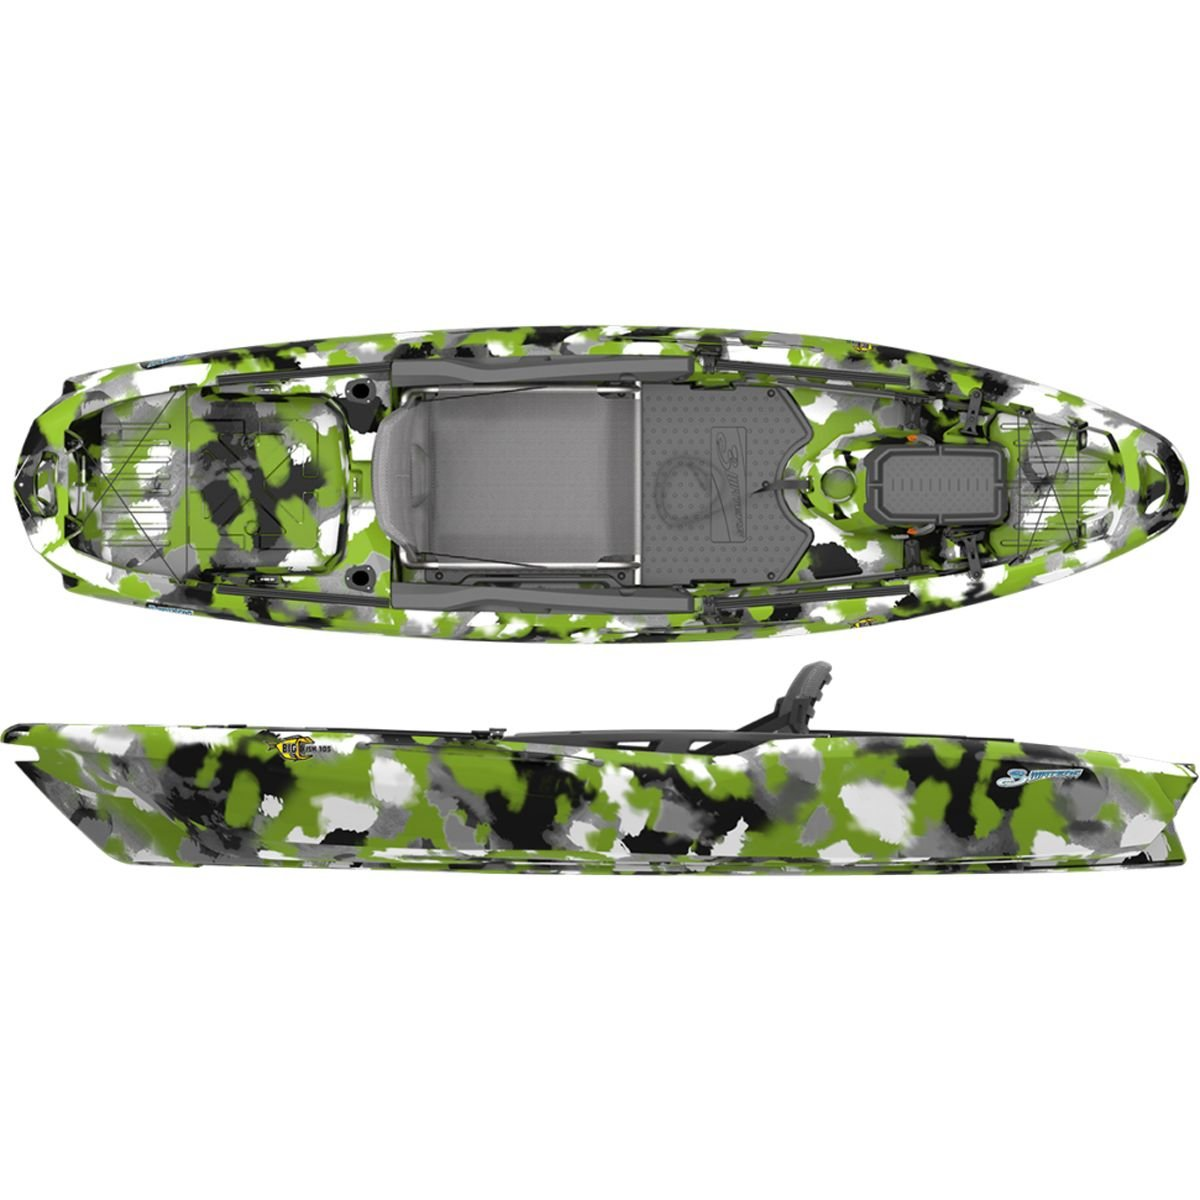 FF 3 Waters Big Fish 105 Kayak